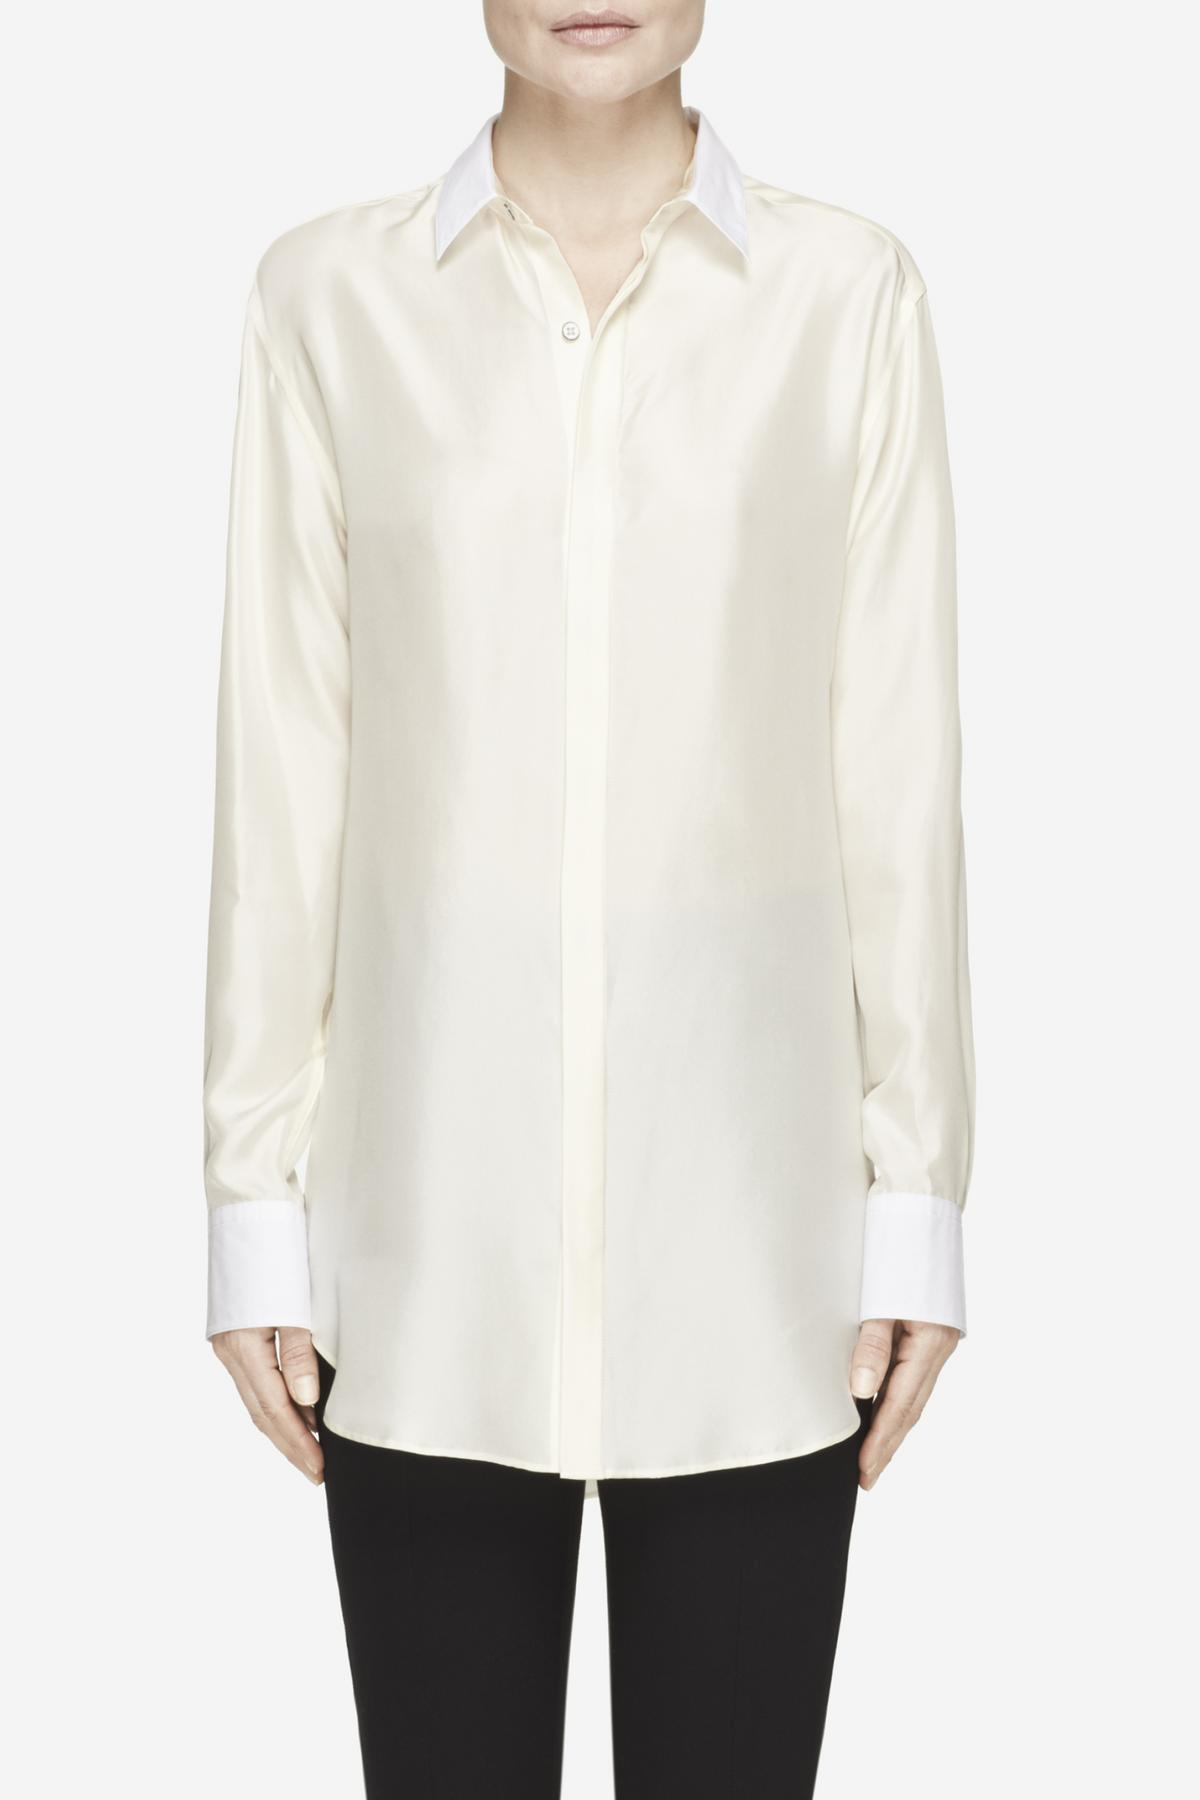 RAG & BONE LEROY SHIRT